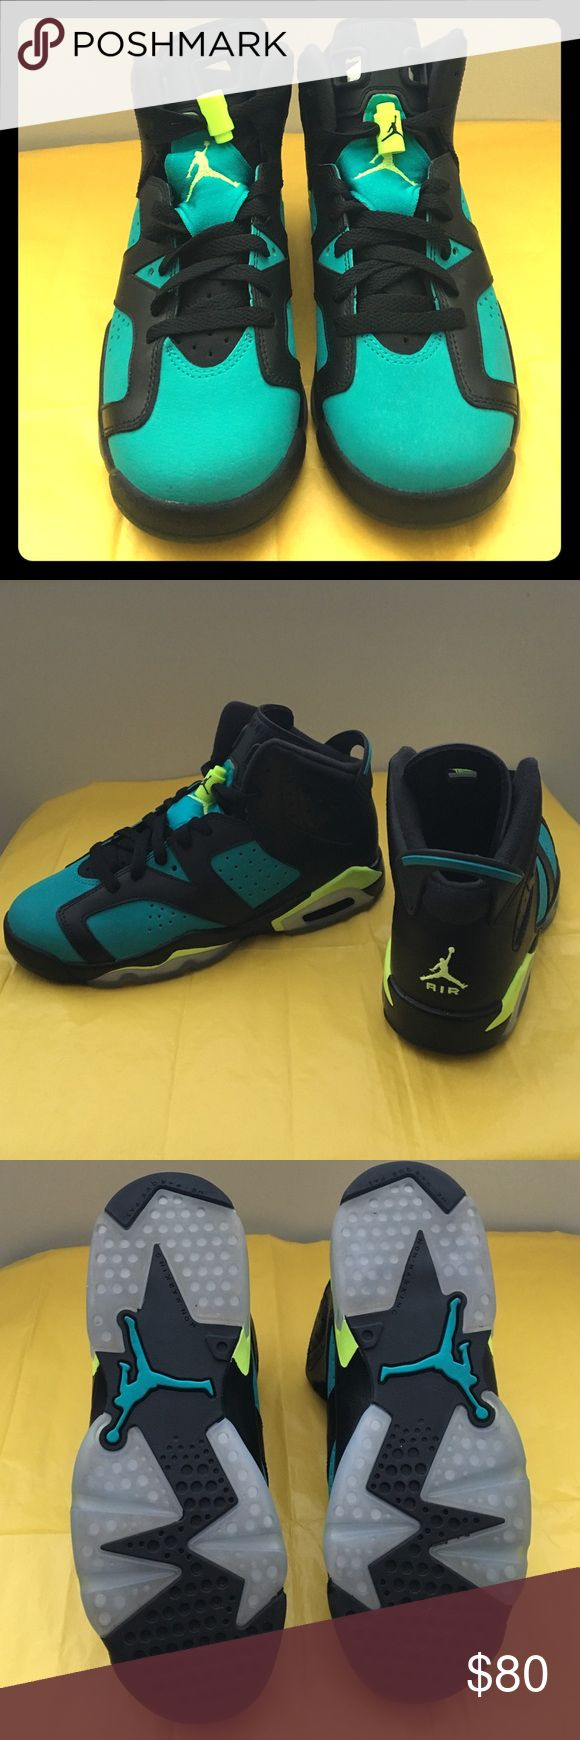 New! Air Jordan Retro 6 GS 'Turbo Green' NWOT! Air Jordan Retro 6 GS Black/Volt Ice-Turbo Green. Size. 5.5Y (youth). No Box. 100% Authentic. Nike Shoes Athletic Shoes